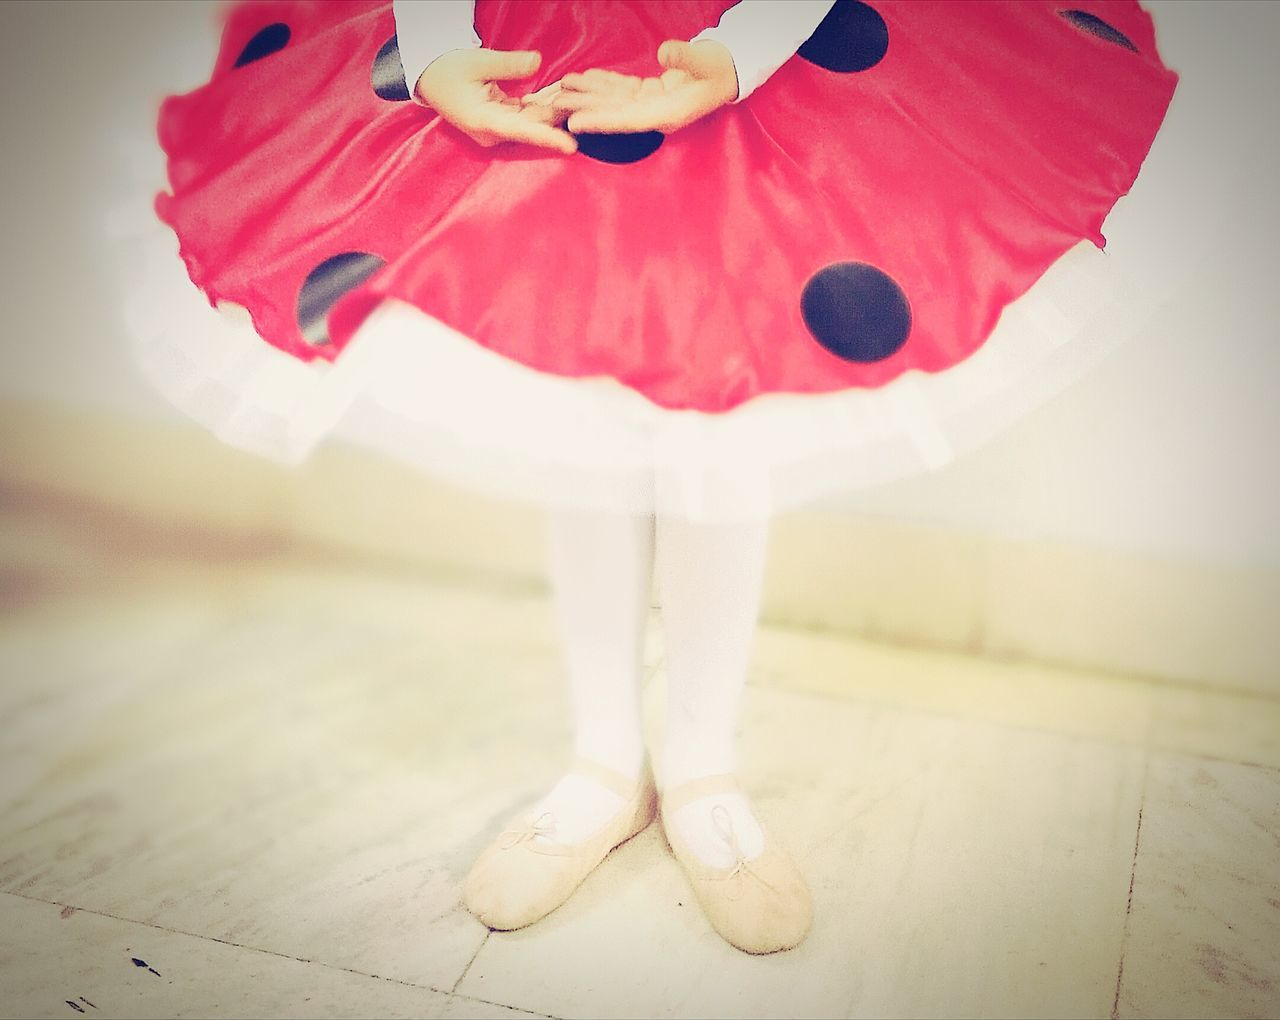 Red One Person Low Section Ballet Dancer EmNewHere Ballett Ballet Class Ballet Shoes Ballet Time  Balletdancer Ballet-girl Ballet Dancers Ballett Love Balletintheworld Ballerina Ballerina Girl Ballerina Photography Ballerina